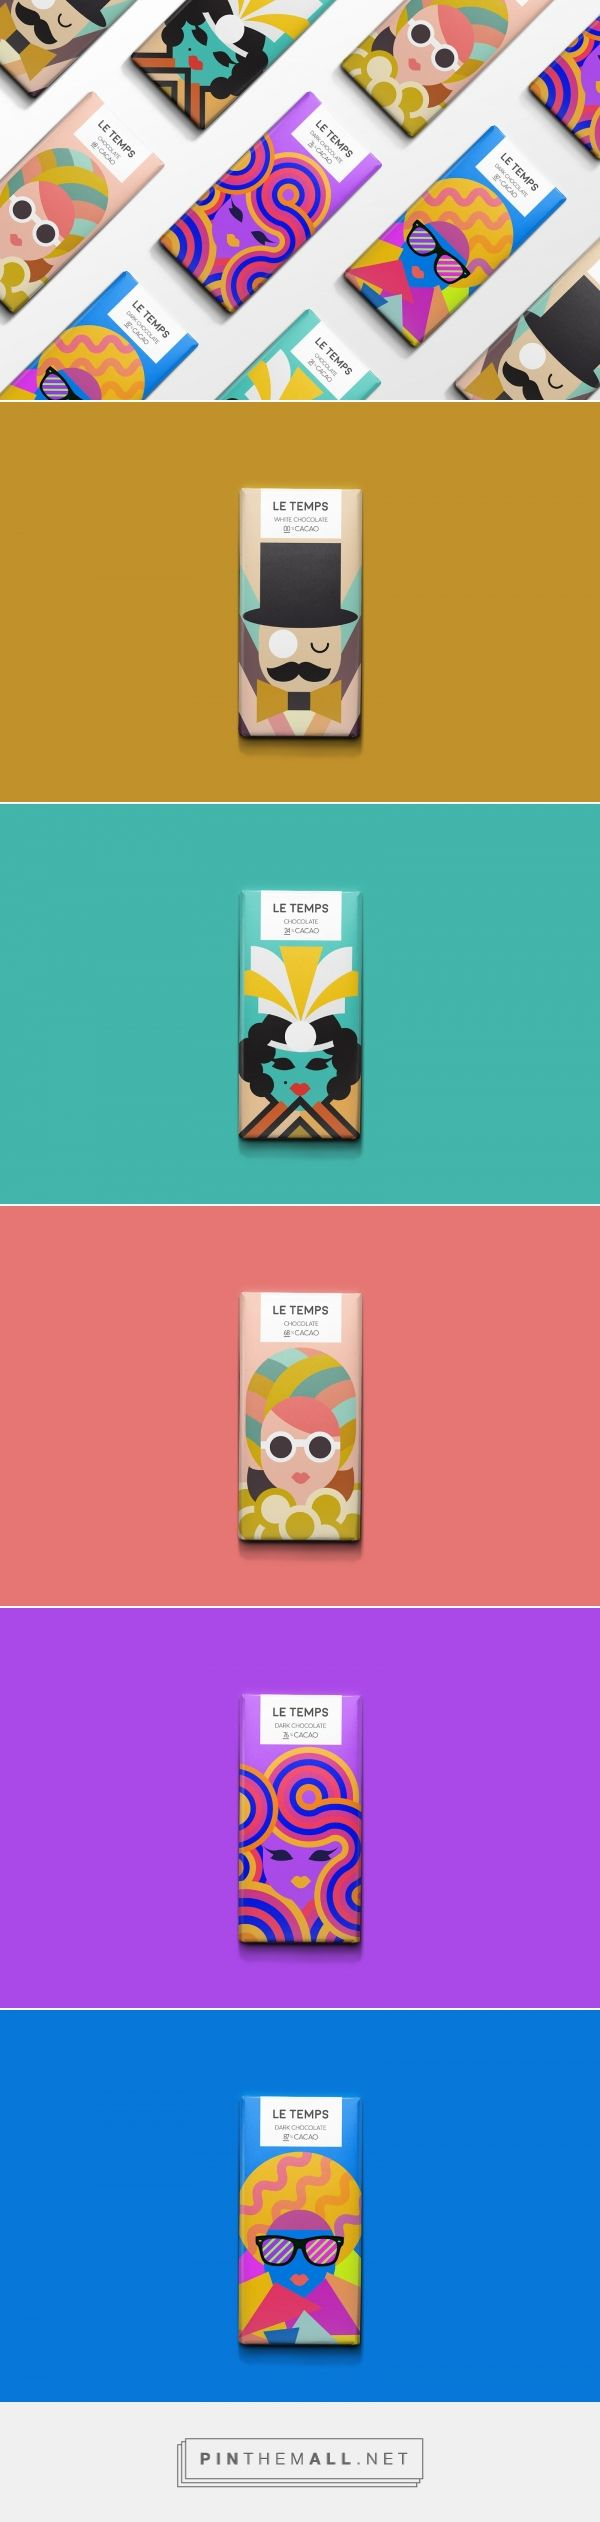 Le Temps Chocolate packaging design concept by Meeta Panesar - https://www.packagingoftheworld.com/2018/03/le-temps-chocolate.html